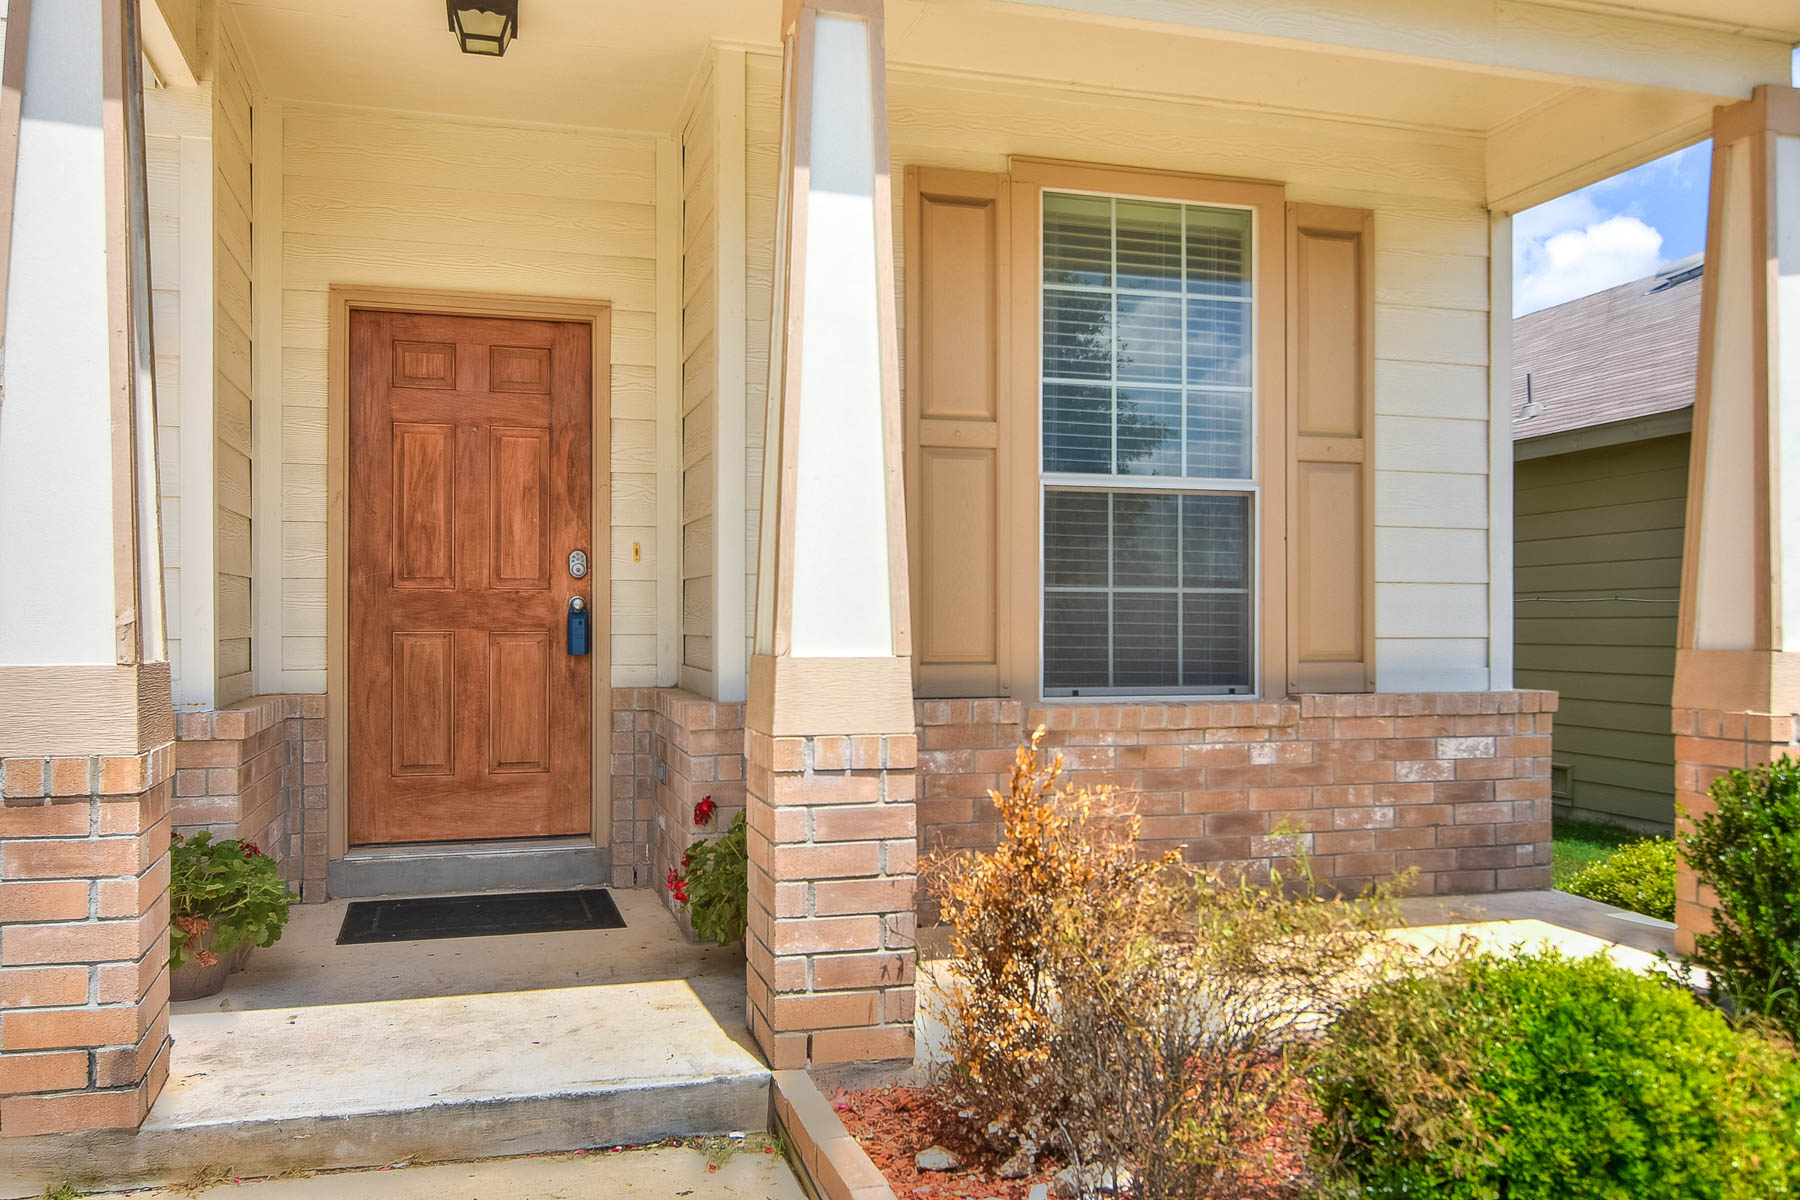 Single Family Home for Sale at Move-In Ready Home in The Bluffs of Stonehaven 7639 Paraiso Haven Boerne, Texas 78015 United States